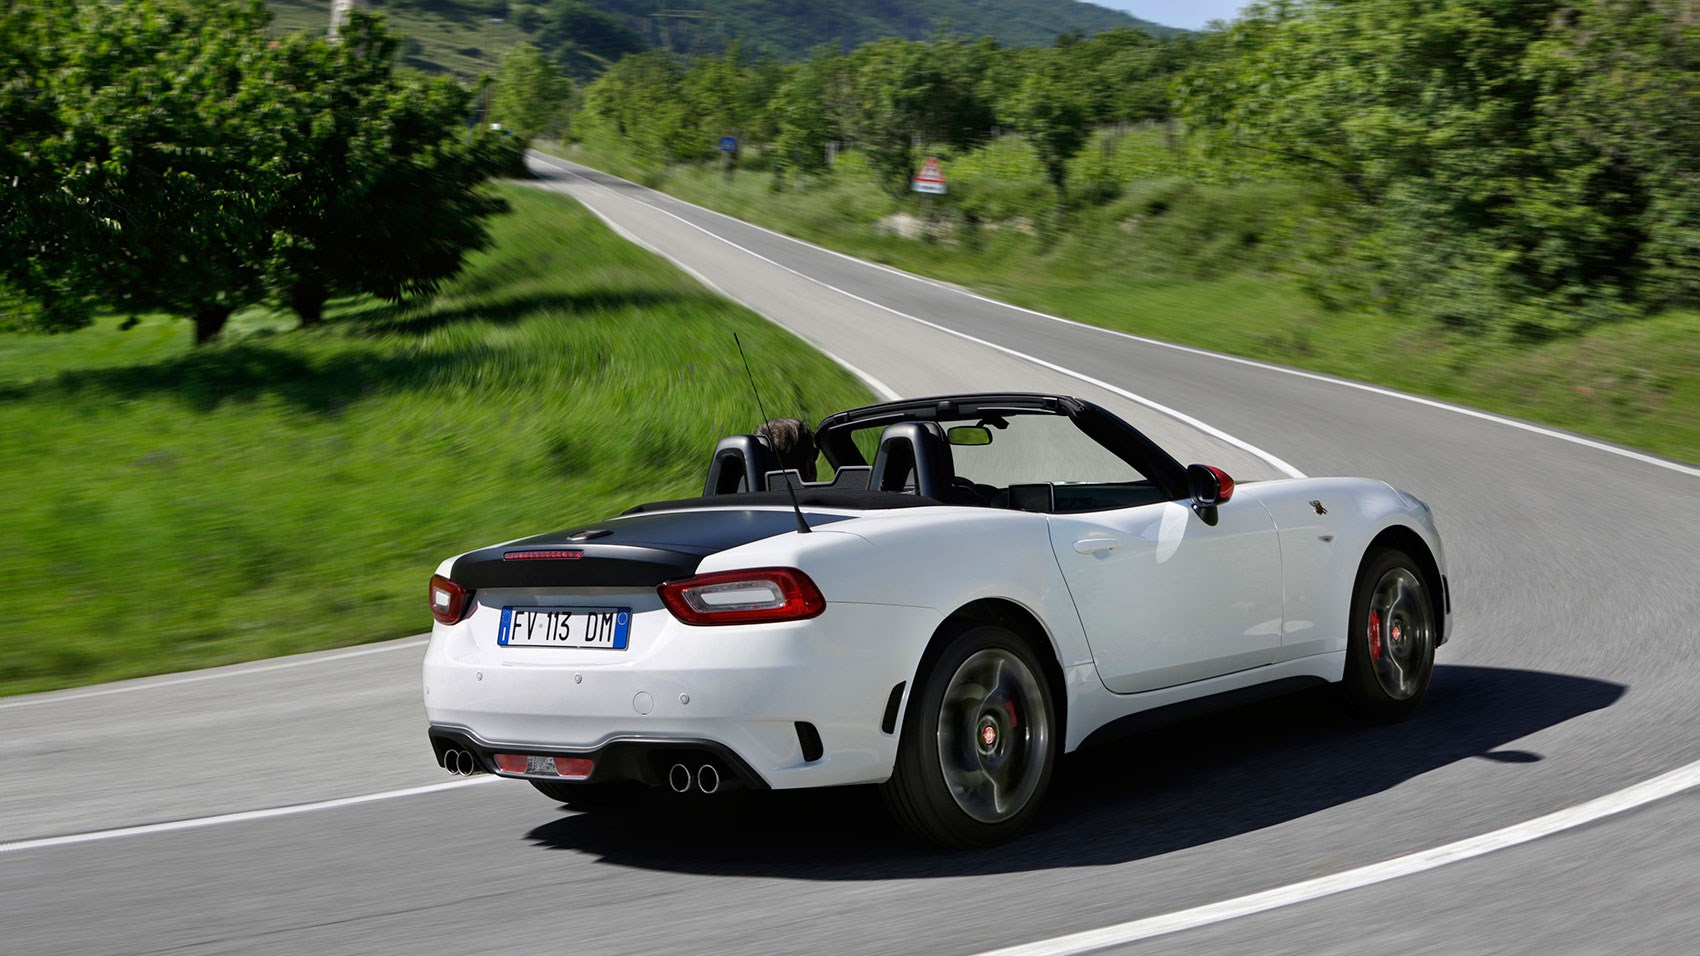 abarth 124 spider 2018 review gt version driven car. Black Bedroom Furniture Sets. Home Design Ideas